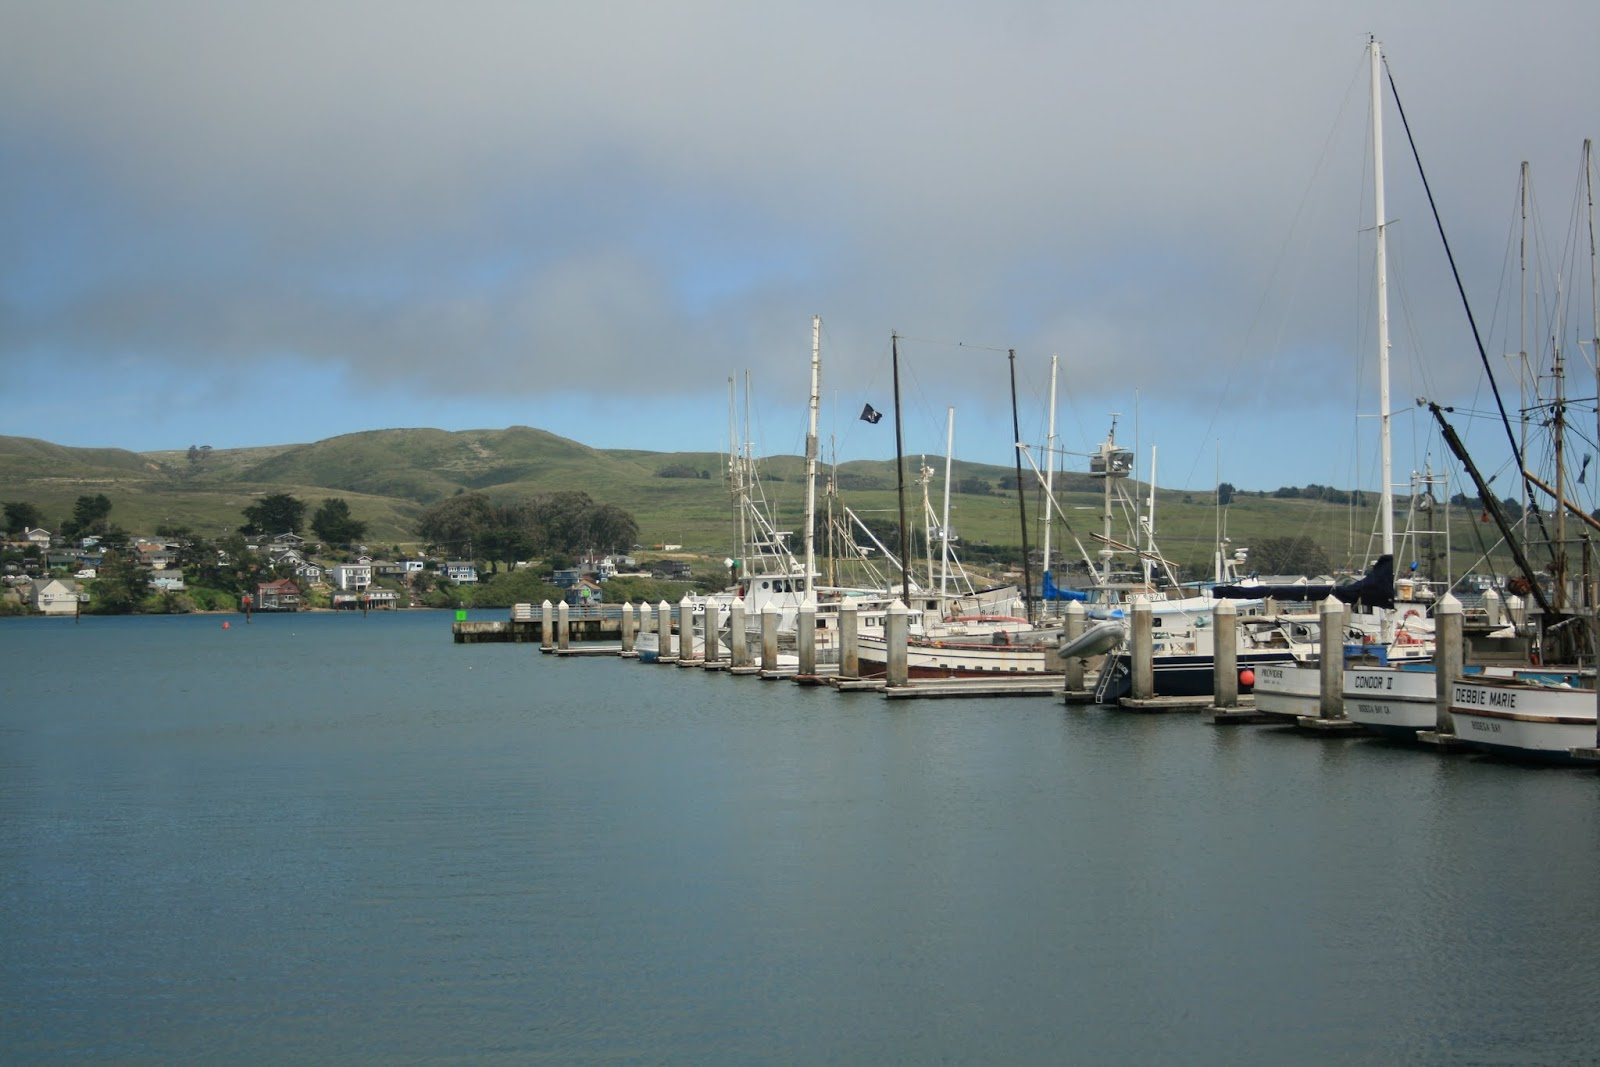 bodega bay Get directions, maps, and traffic for bodega bay, ca check flight prices and hotel availability for your visit.